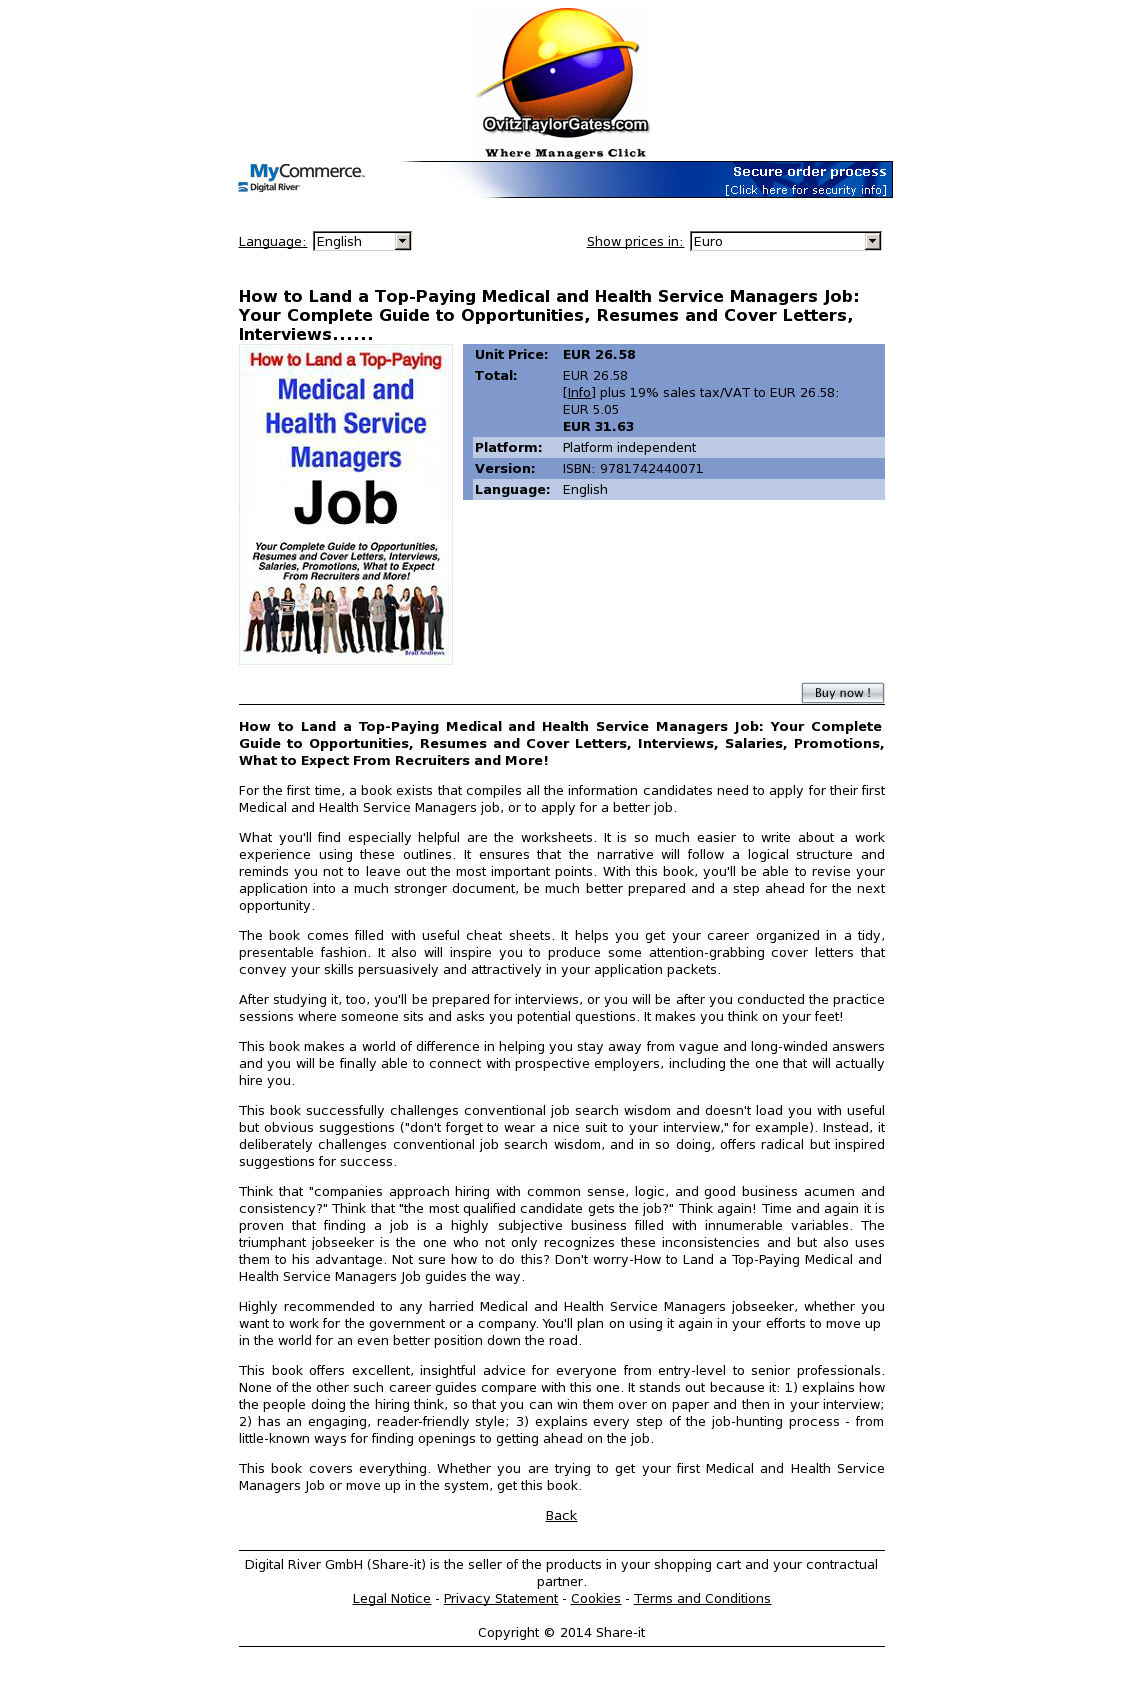 How to Land a Top-Paying Medical and Health Service Managers Job: Your Complete Guide to Opportunities, Resumes and Cover Letters, Interviews......